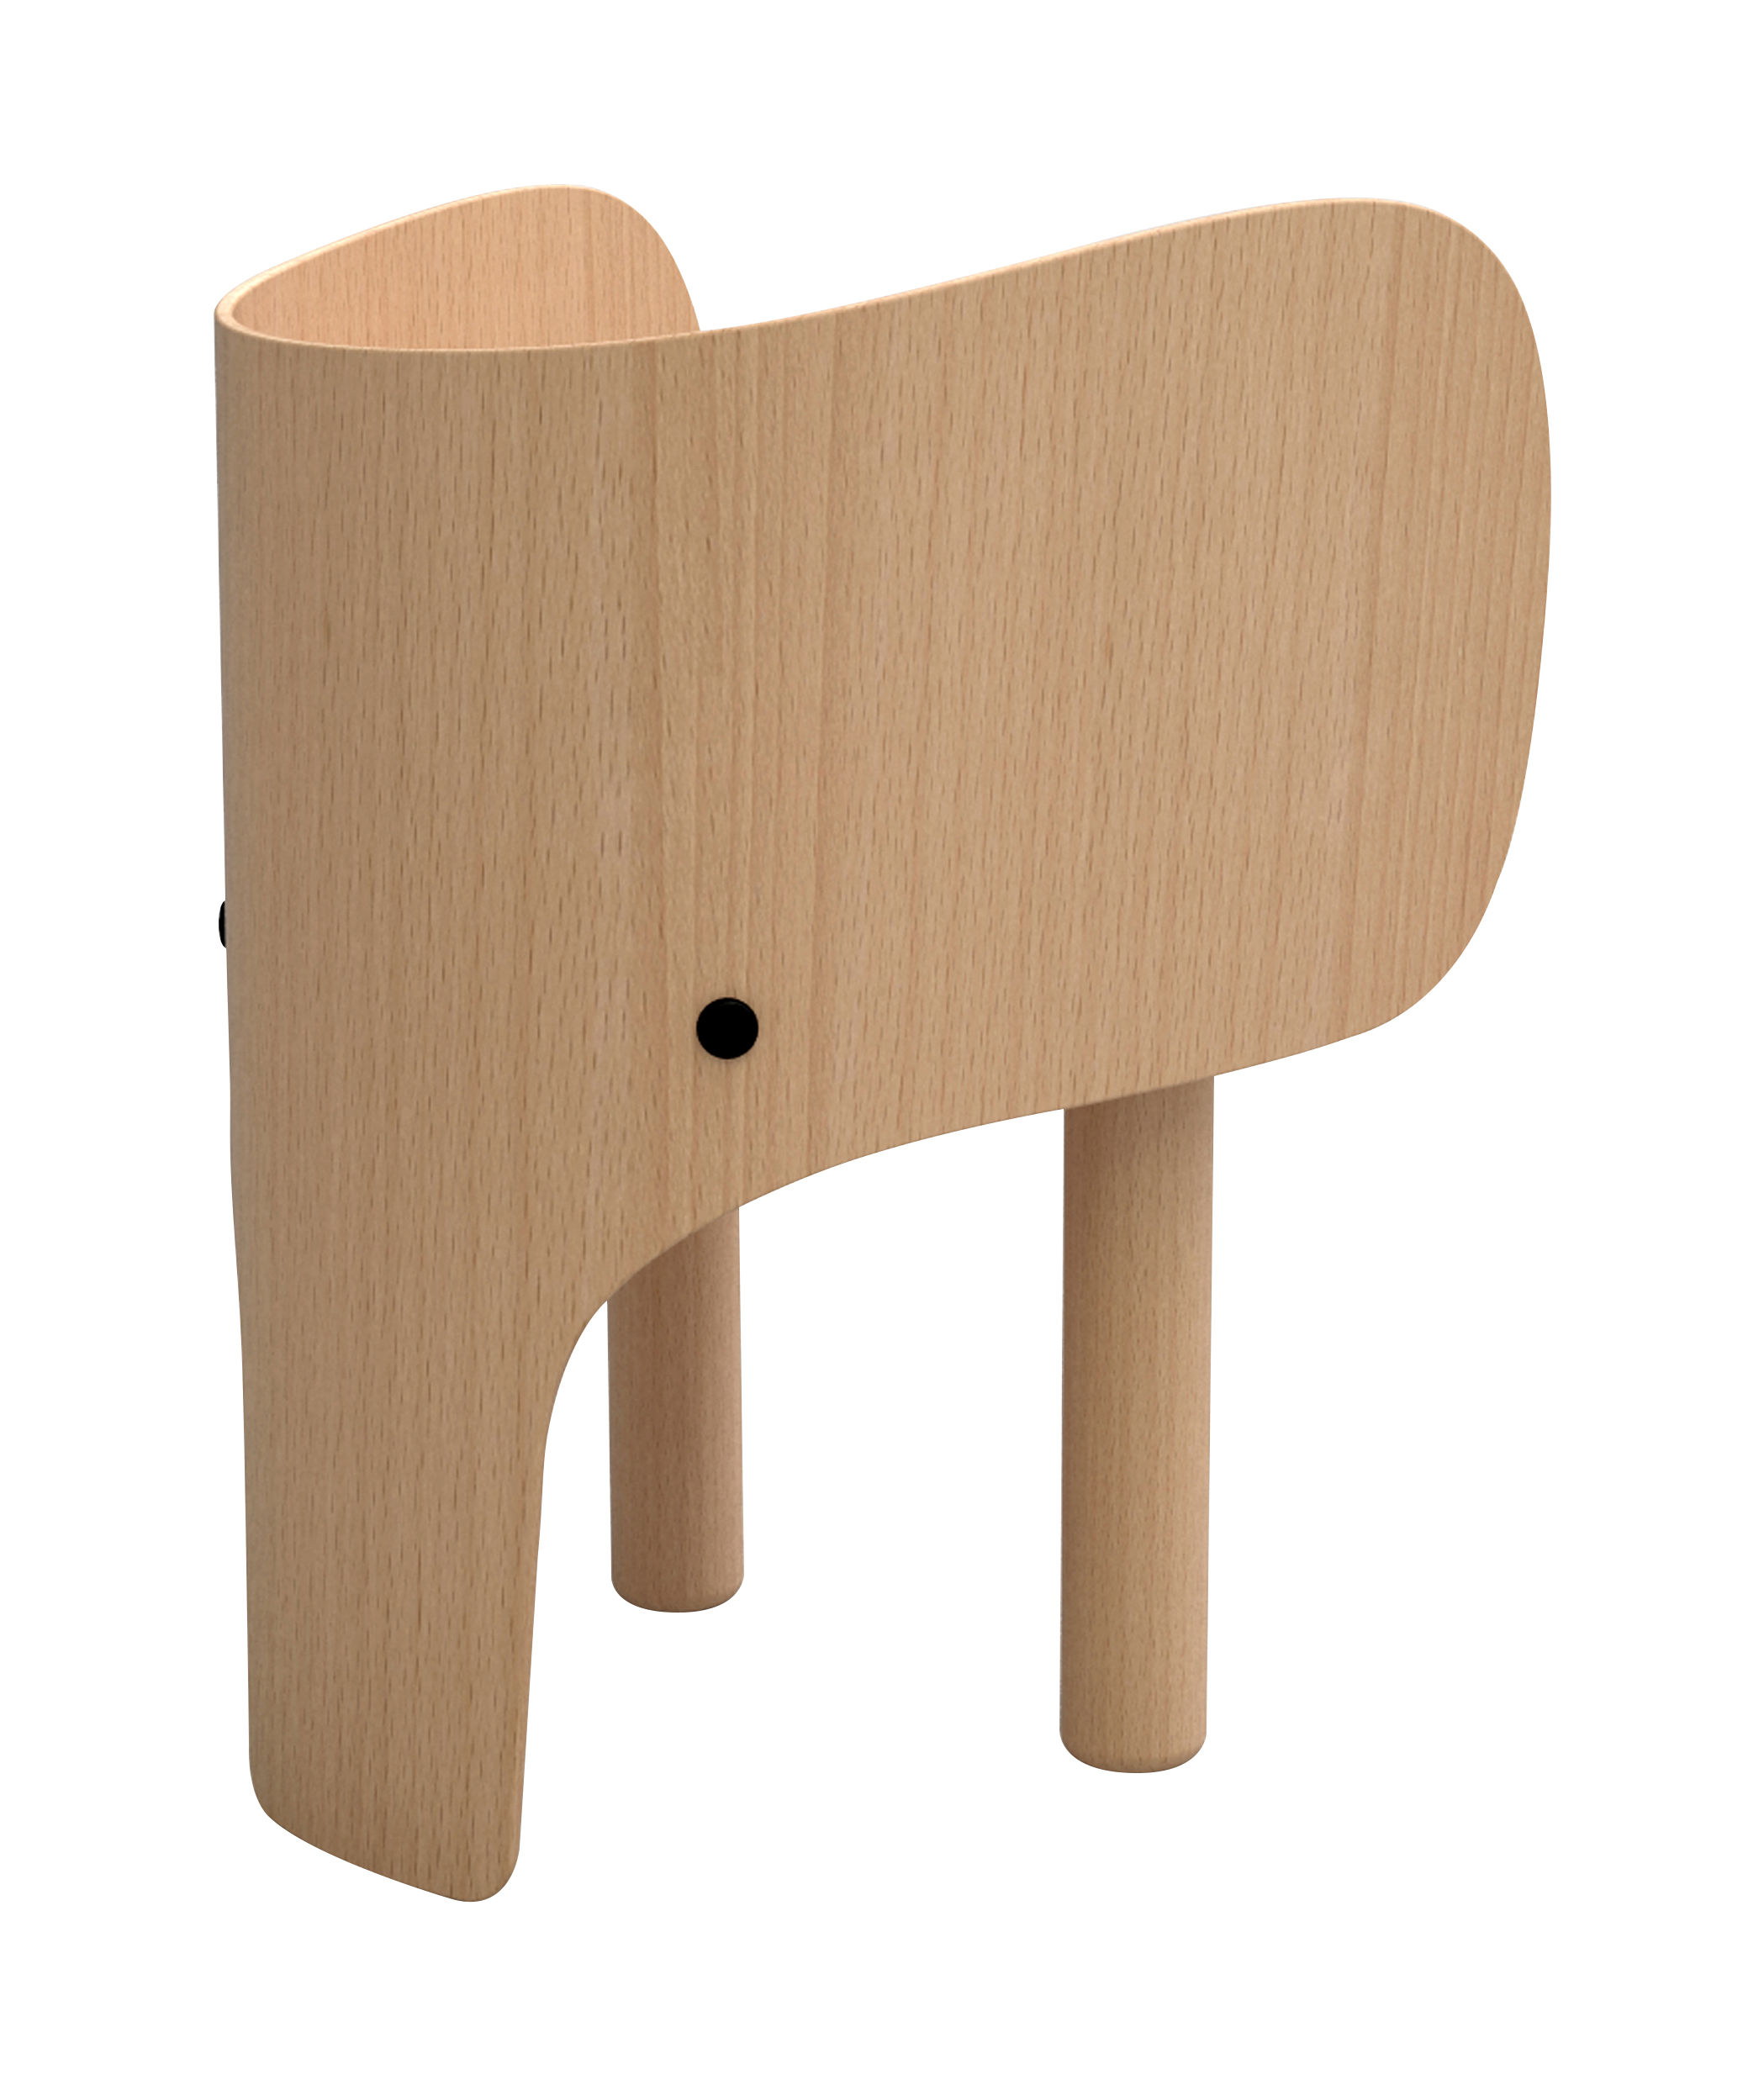 Elephant Childrens chair  H 52 cm Beech by Elements